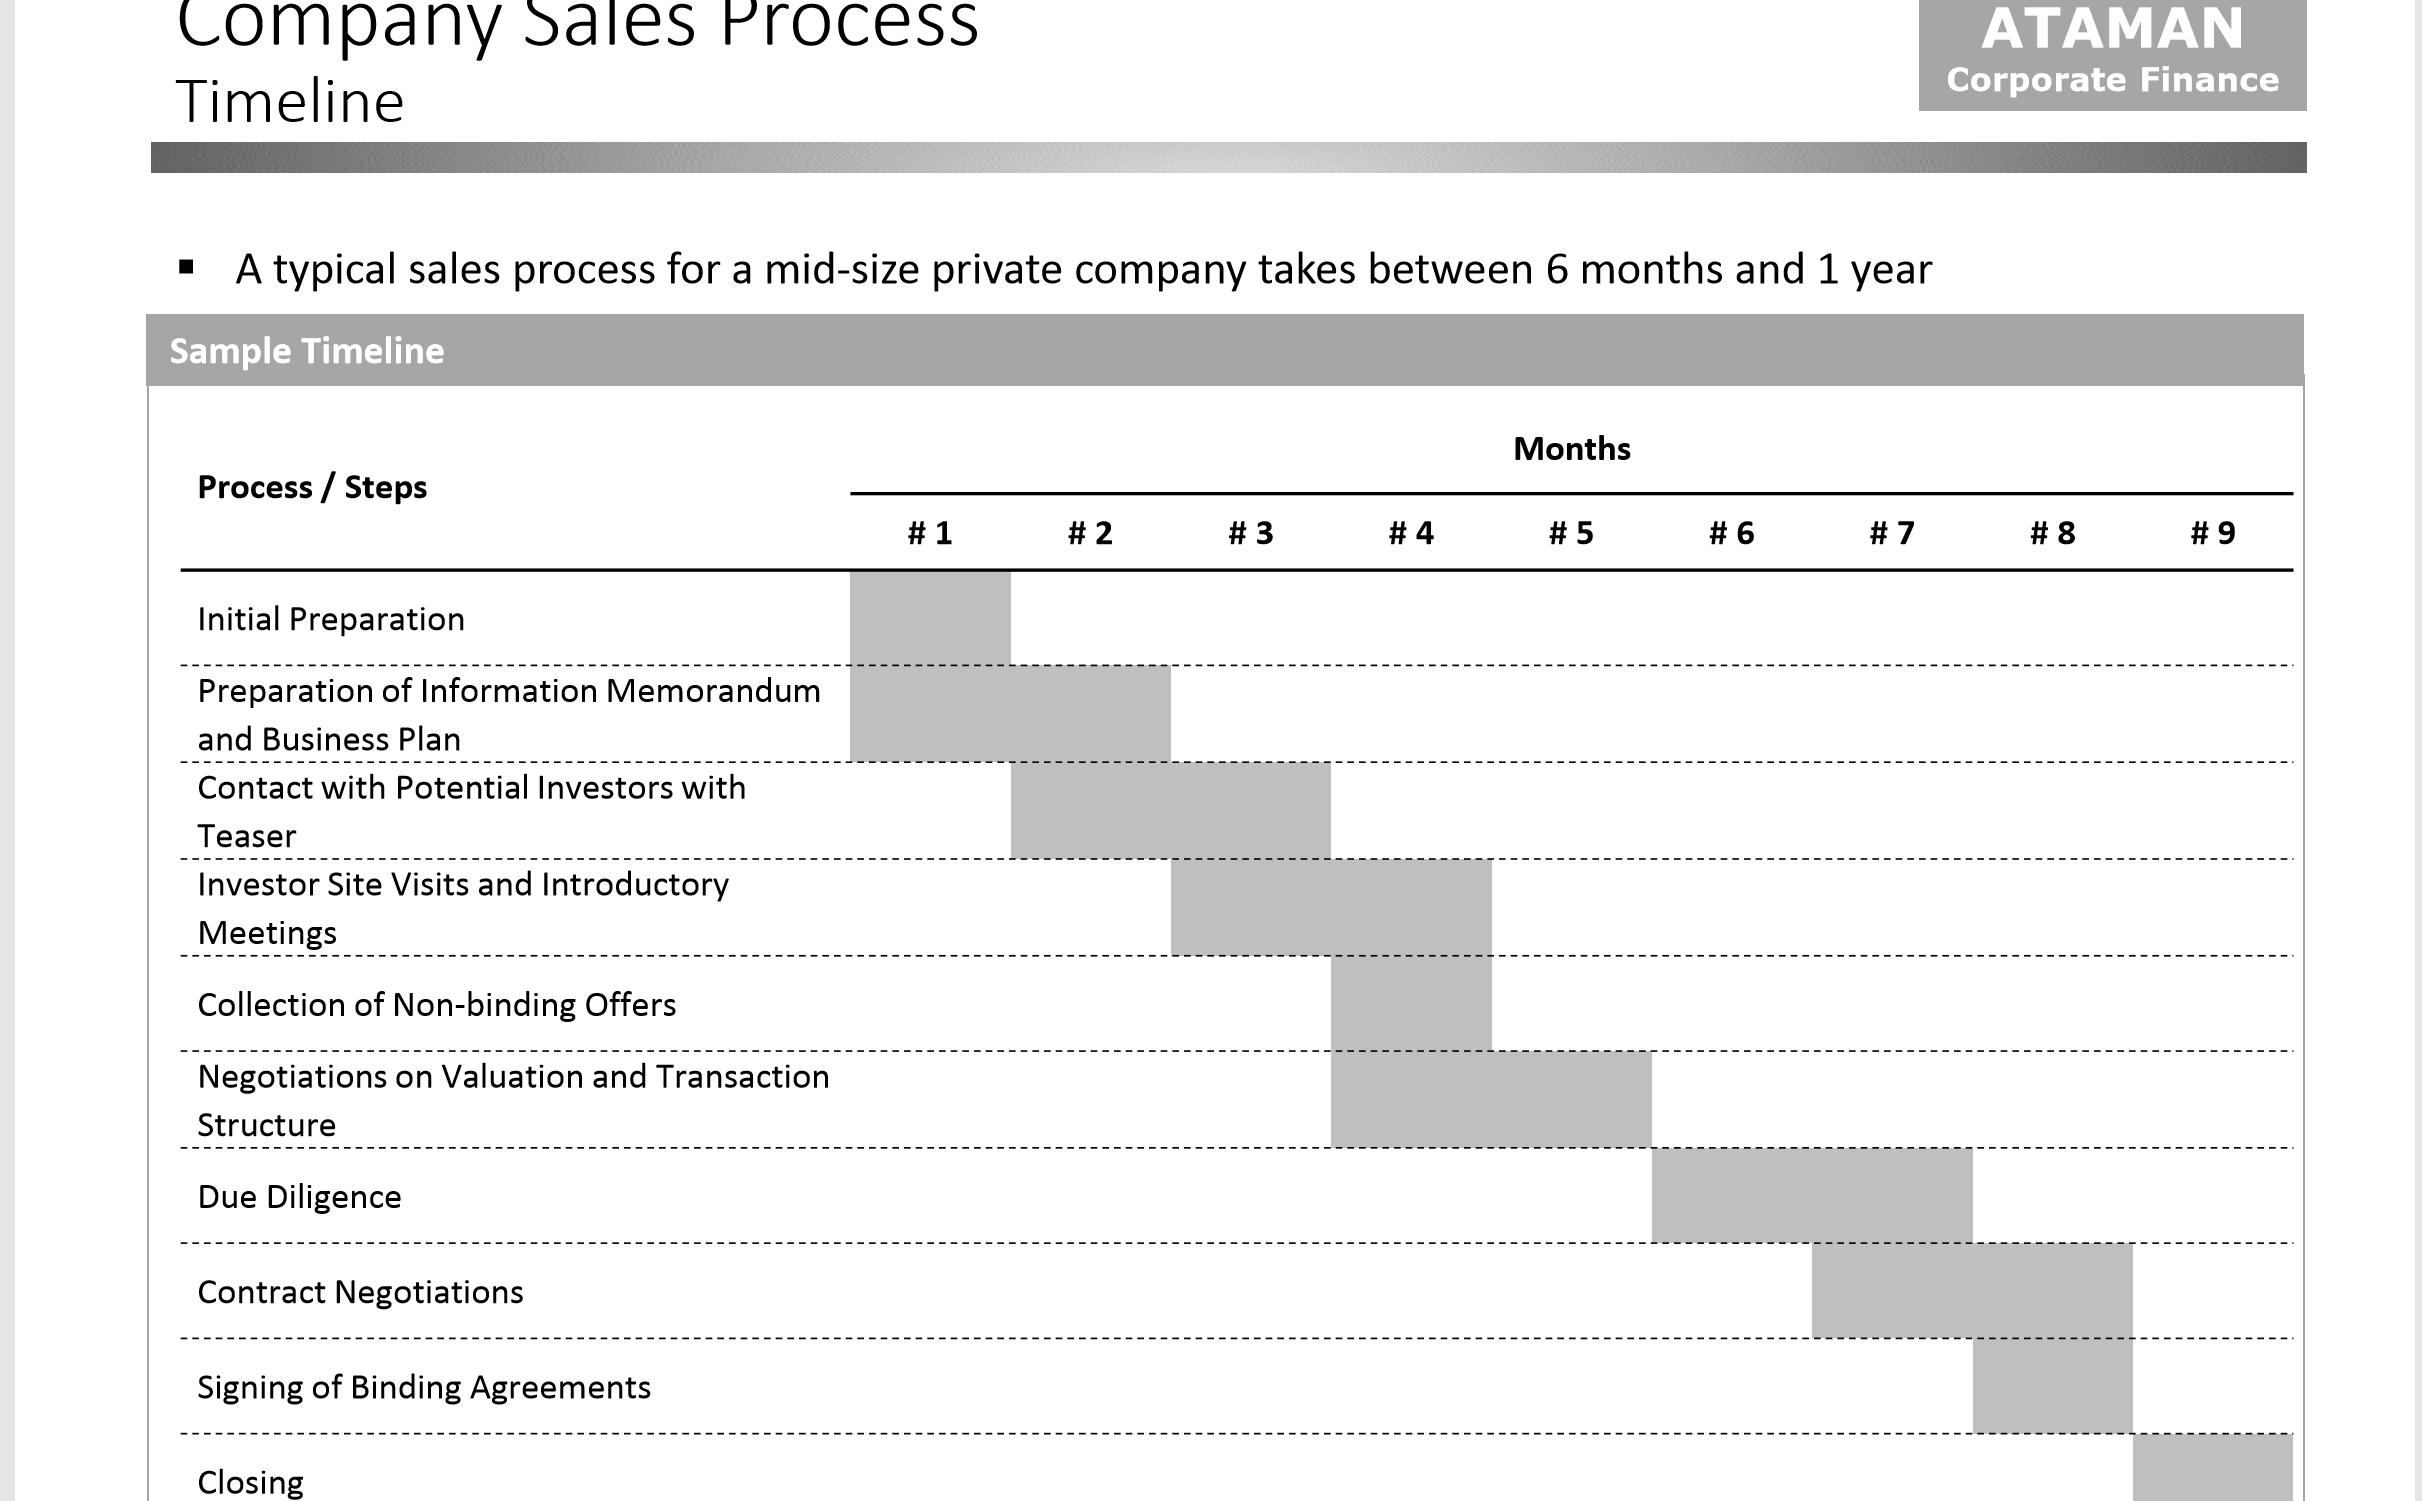 Sales Process Picture Not Edited.png